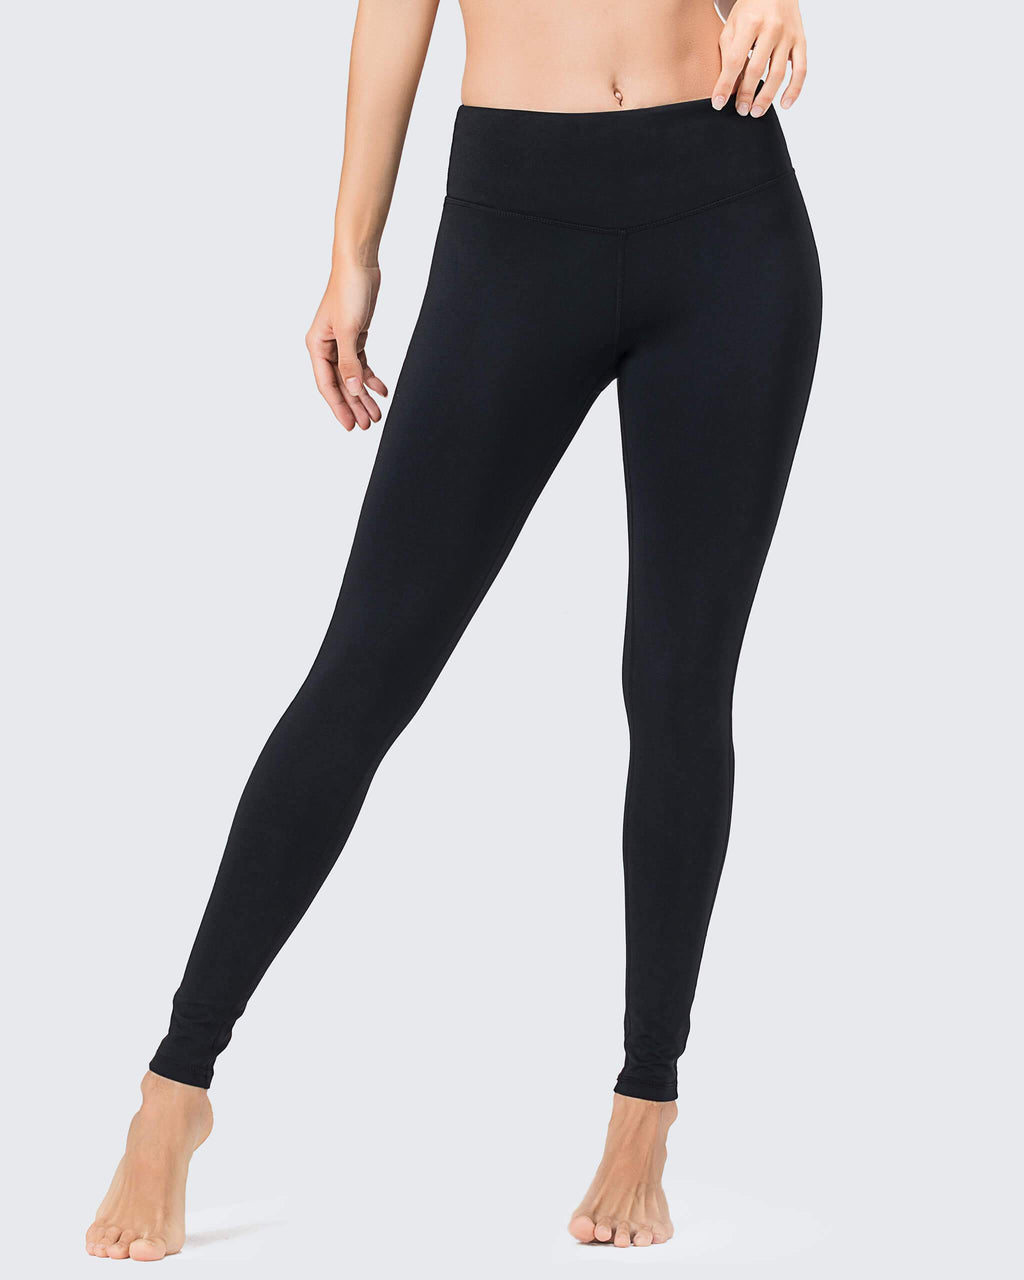 Fleece Lined Warm Yoga Legging-Naviskin